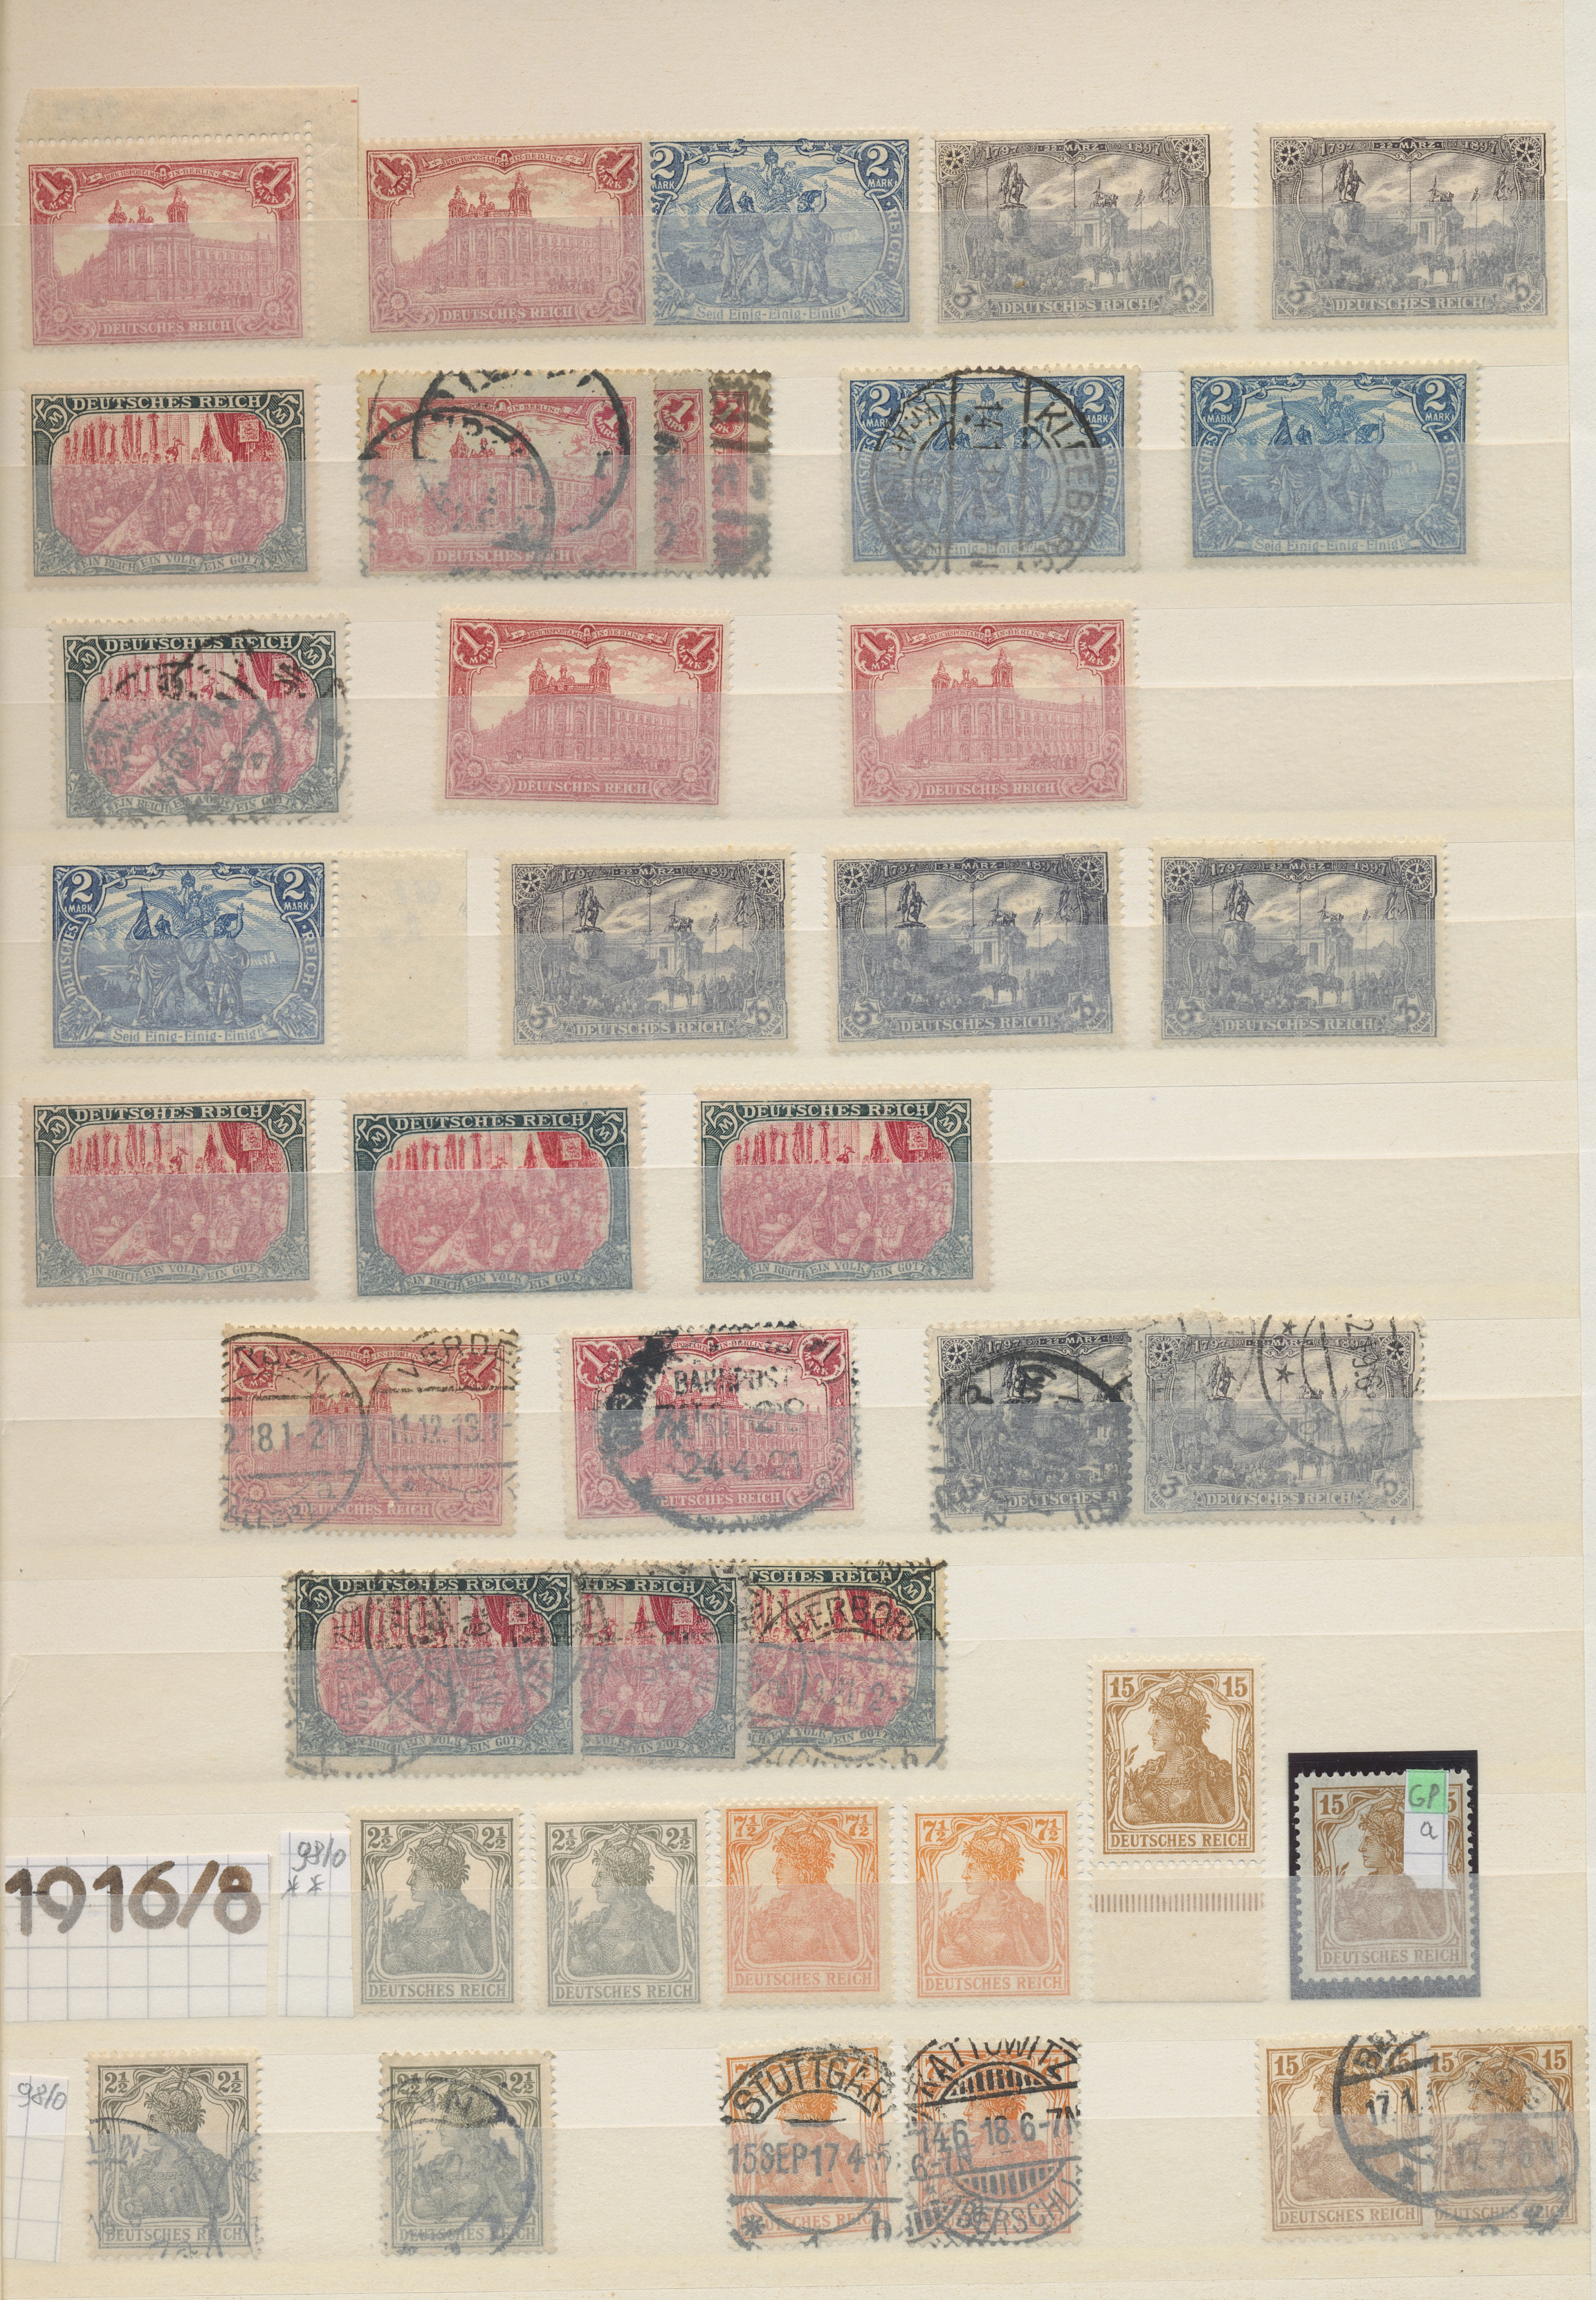 Lot 31416 - Deutsches Reich  -  Auktionshaus Christoph Gärtner GmbH & Co. KG Auction #40 Collections Germany, Wunderkartons